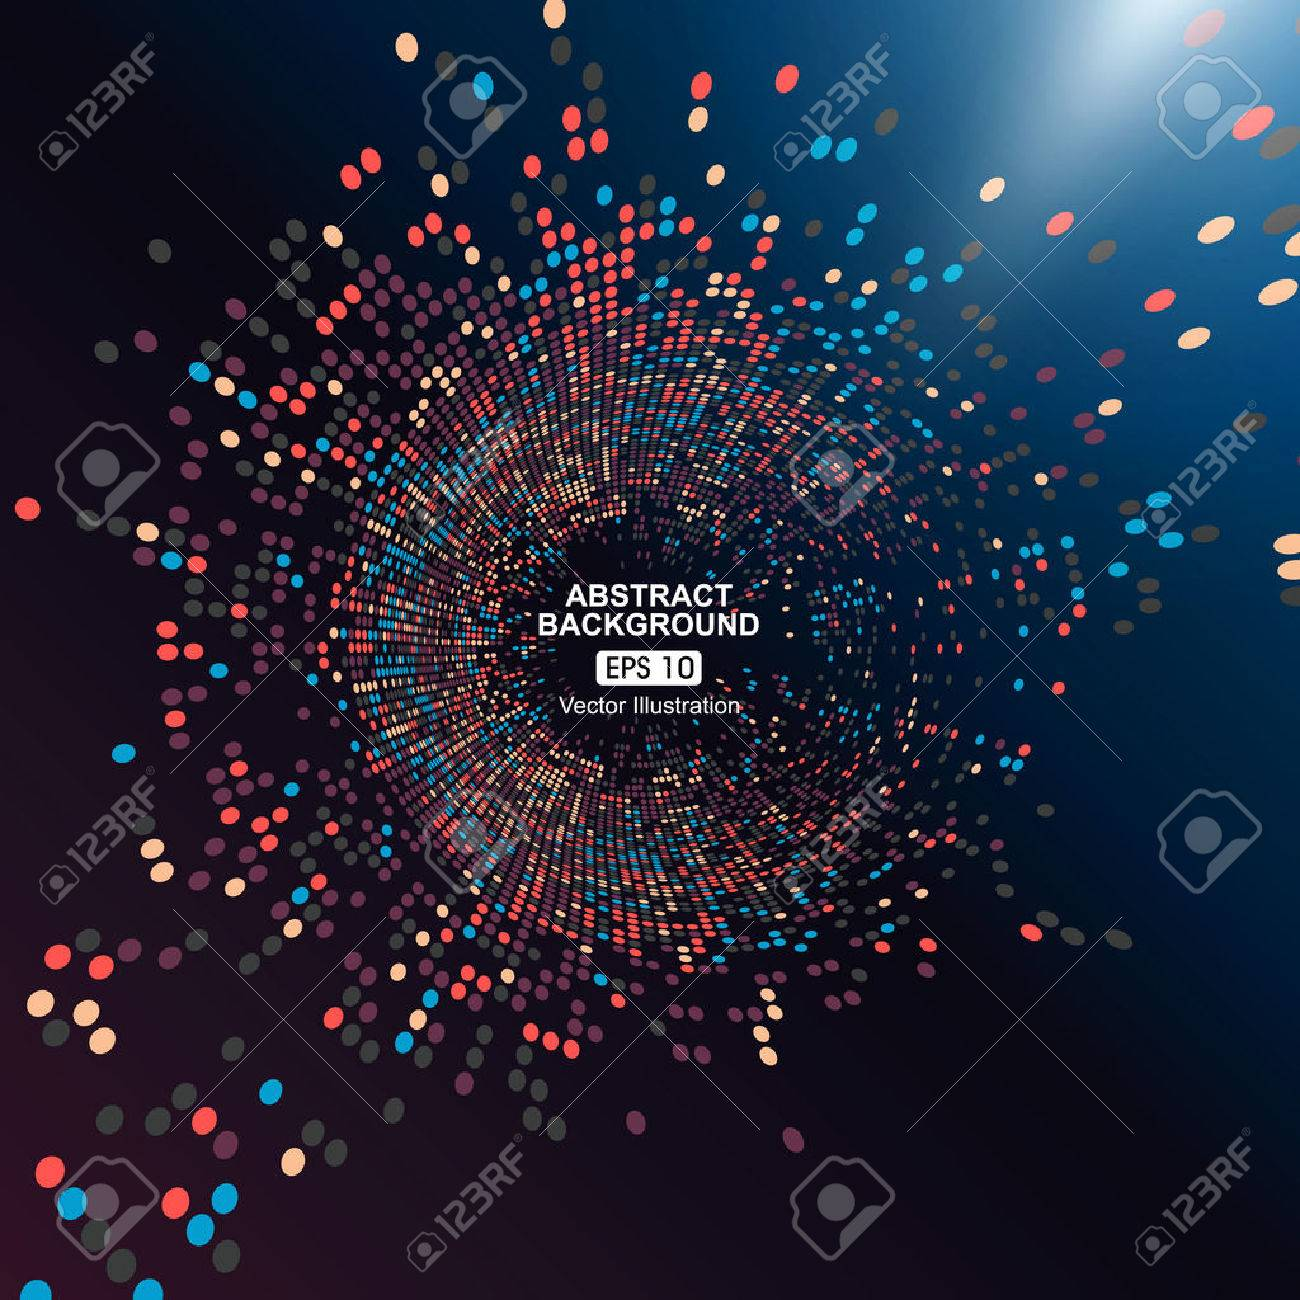 Consisting of colorful little, radial graphics, abstract background. - 52594708